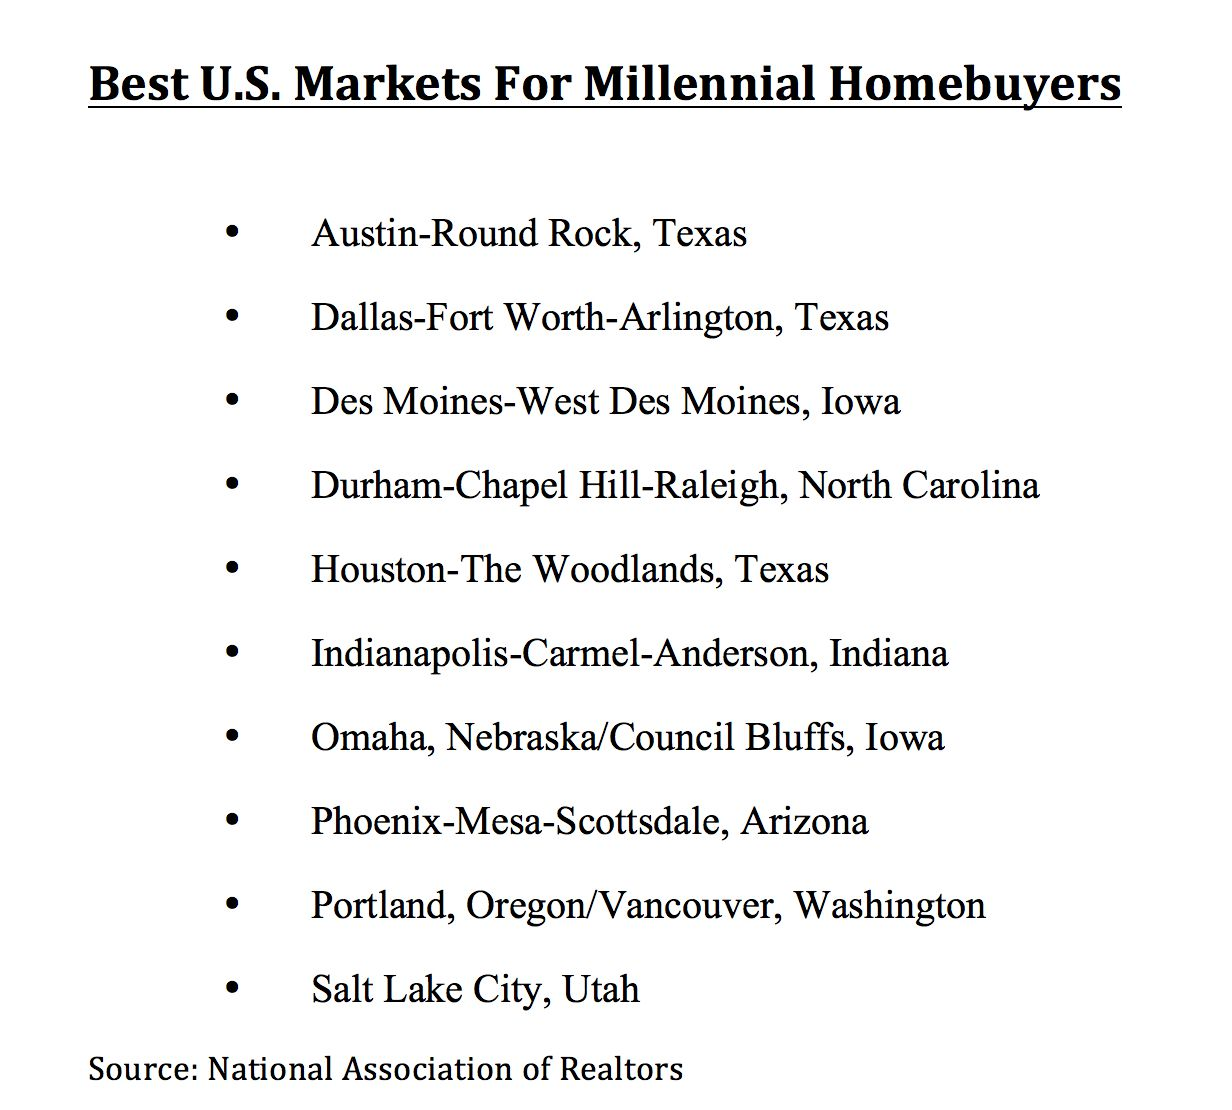 D-FW is on the list of top millennial home markets.